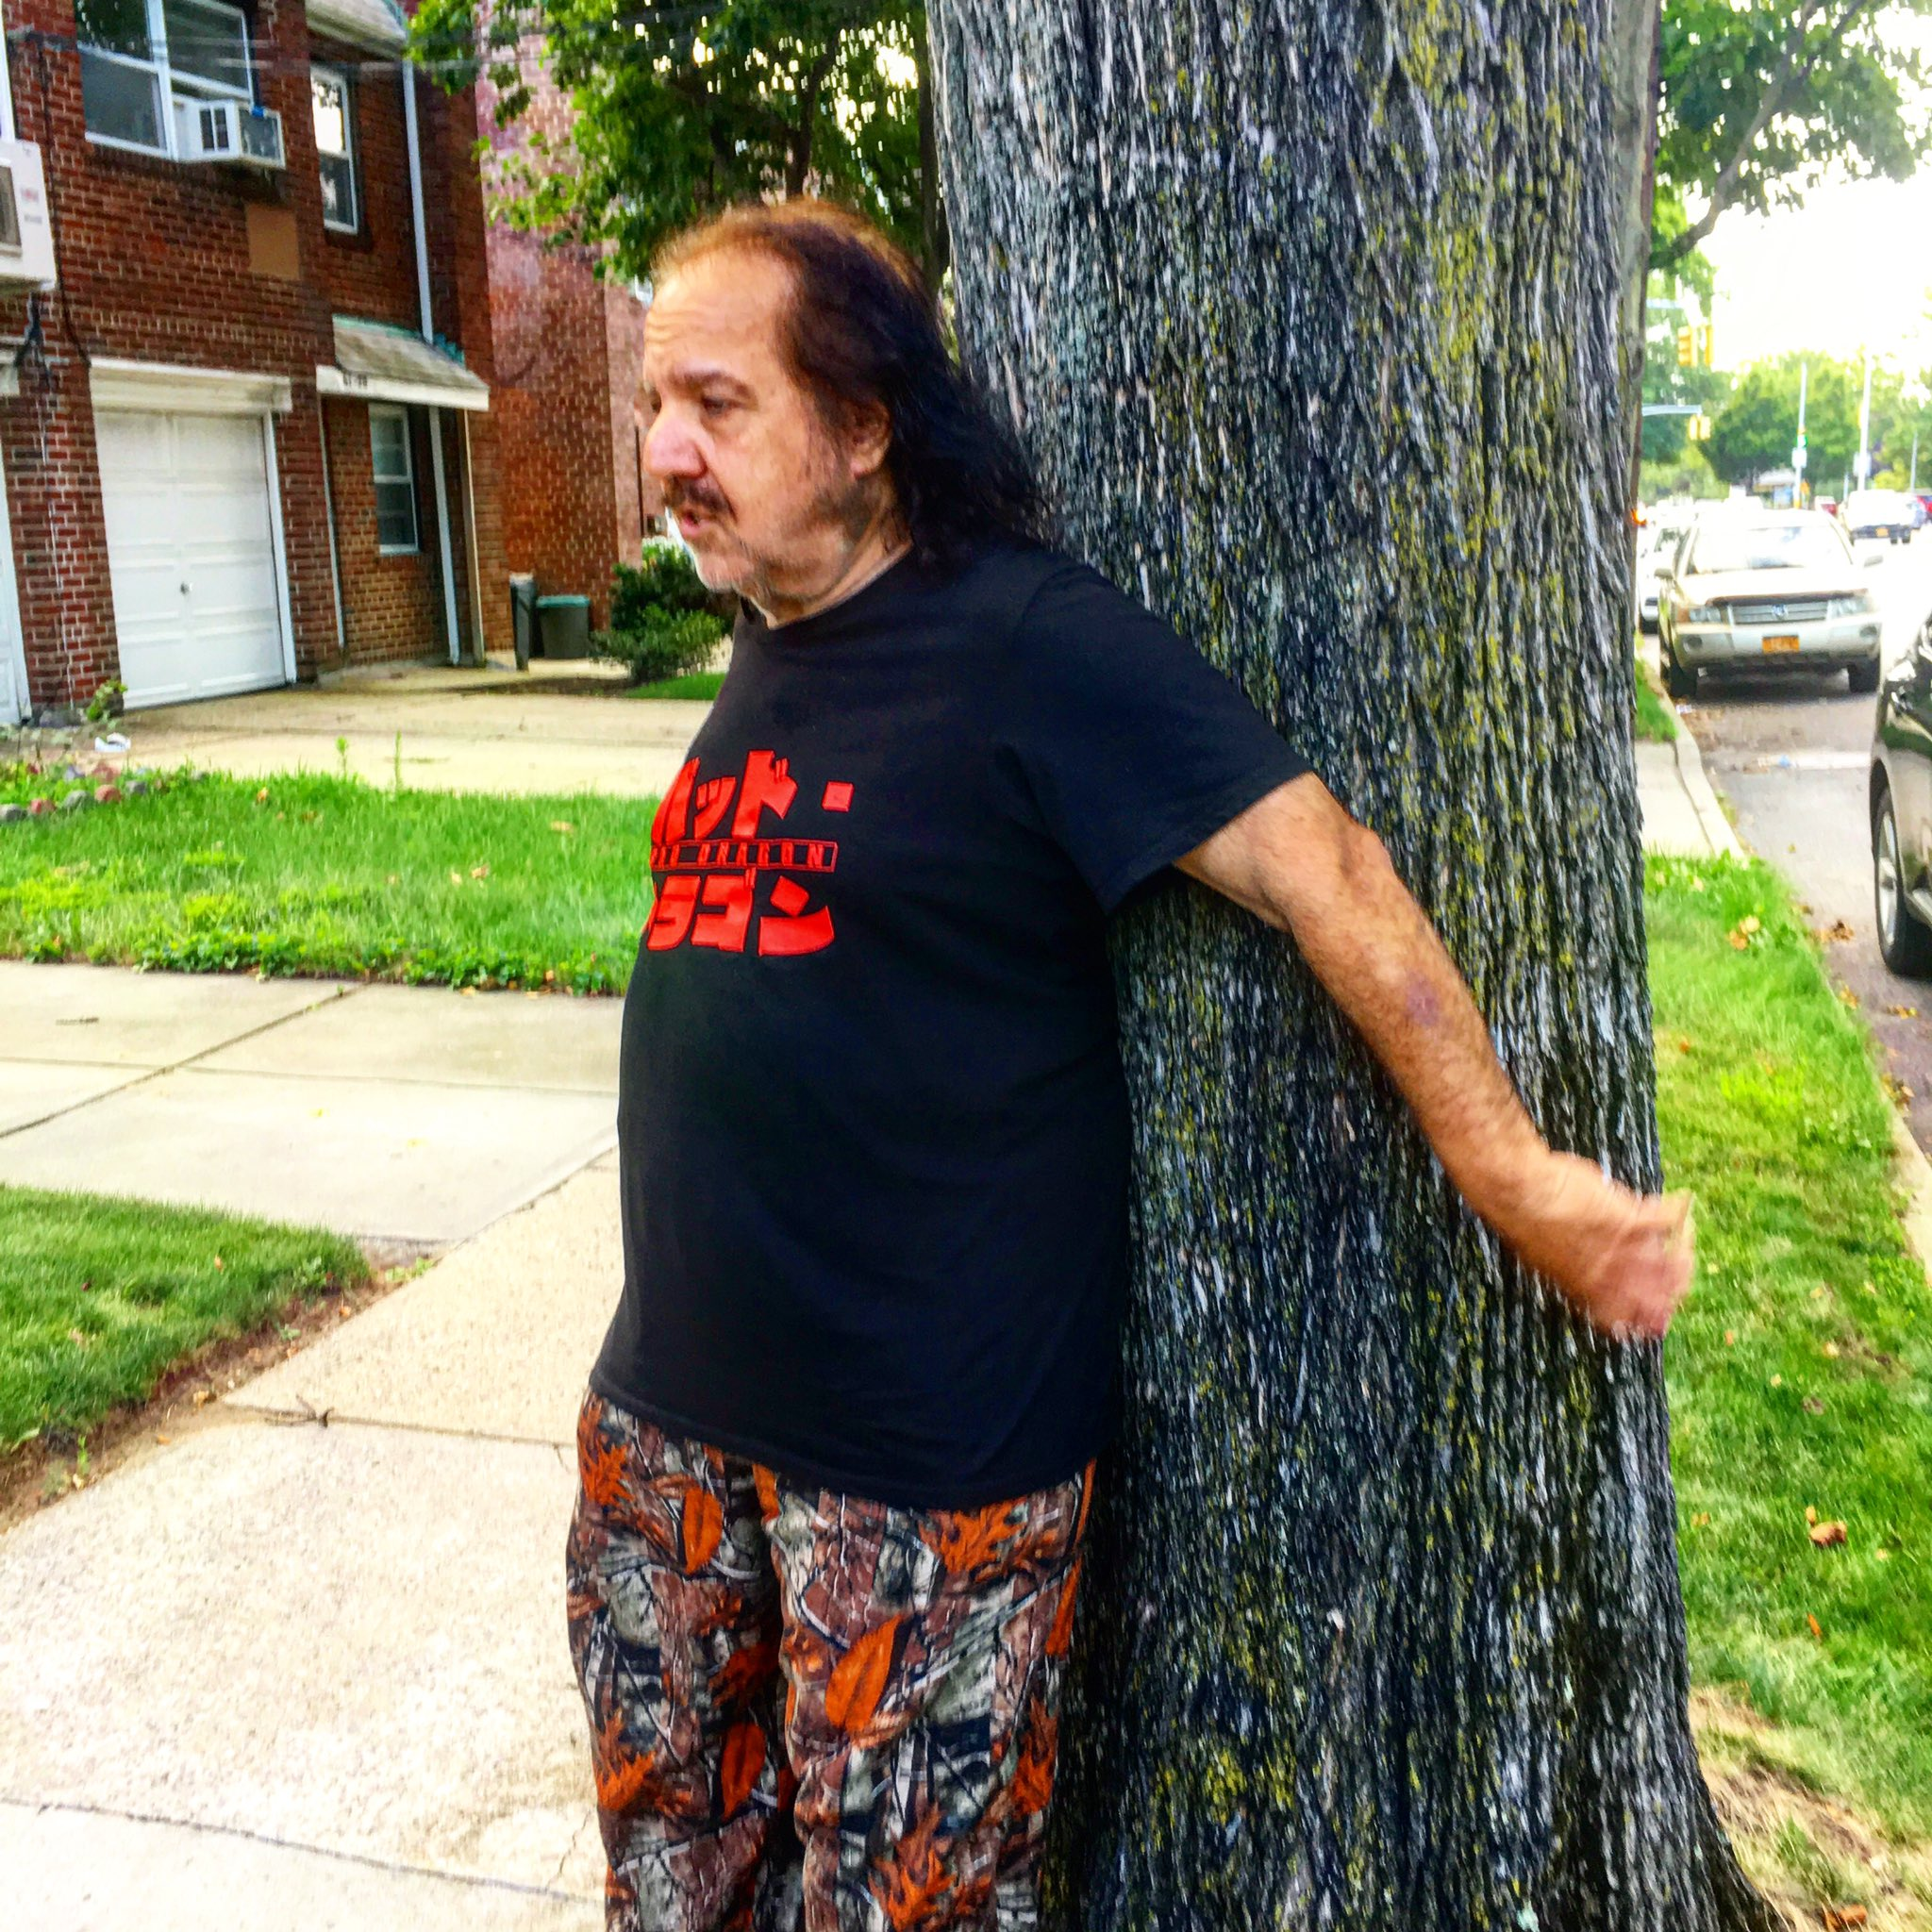 Adult Film Star Ron Jeremy Fighting to Save Tree Outside His Childhood Home in Queens